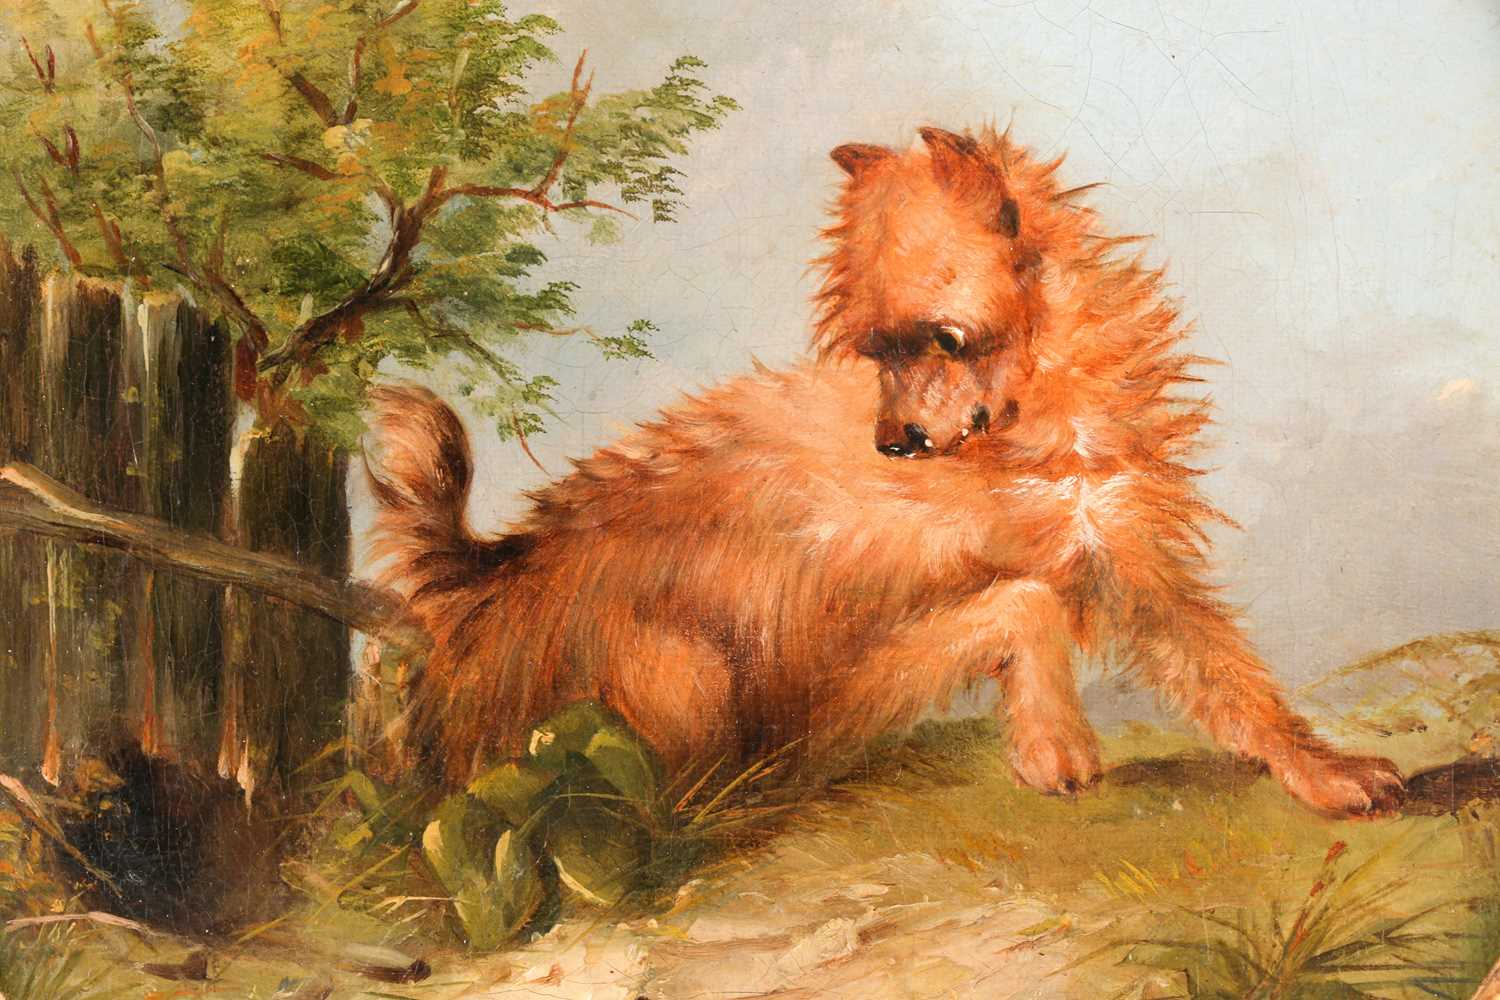 Circle of George Armfield (1808-1893), Terrier in a landscape, oil on canvas, 20.5 cm x 20.5 cm, - Image 2 of 6